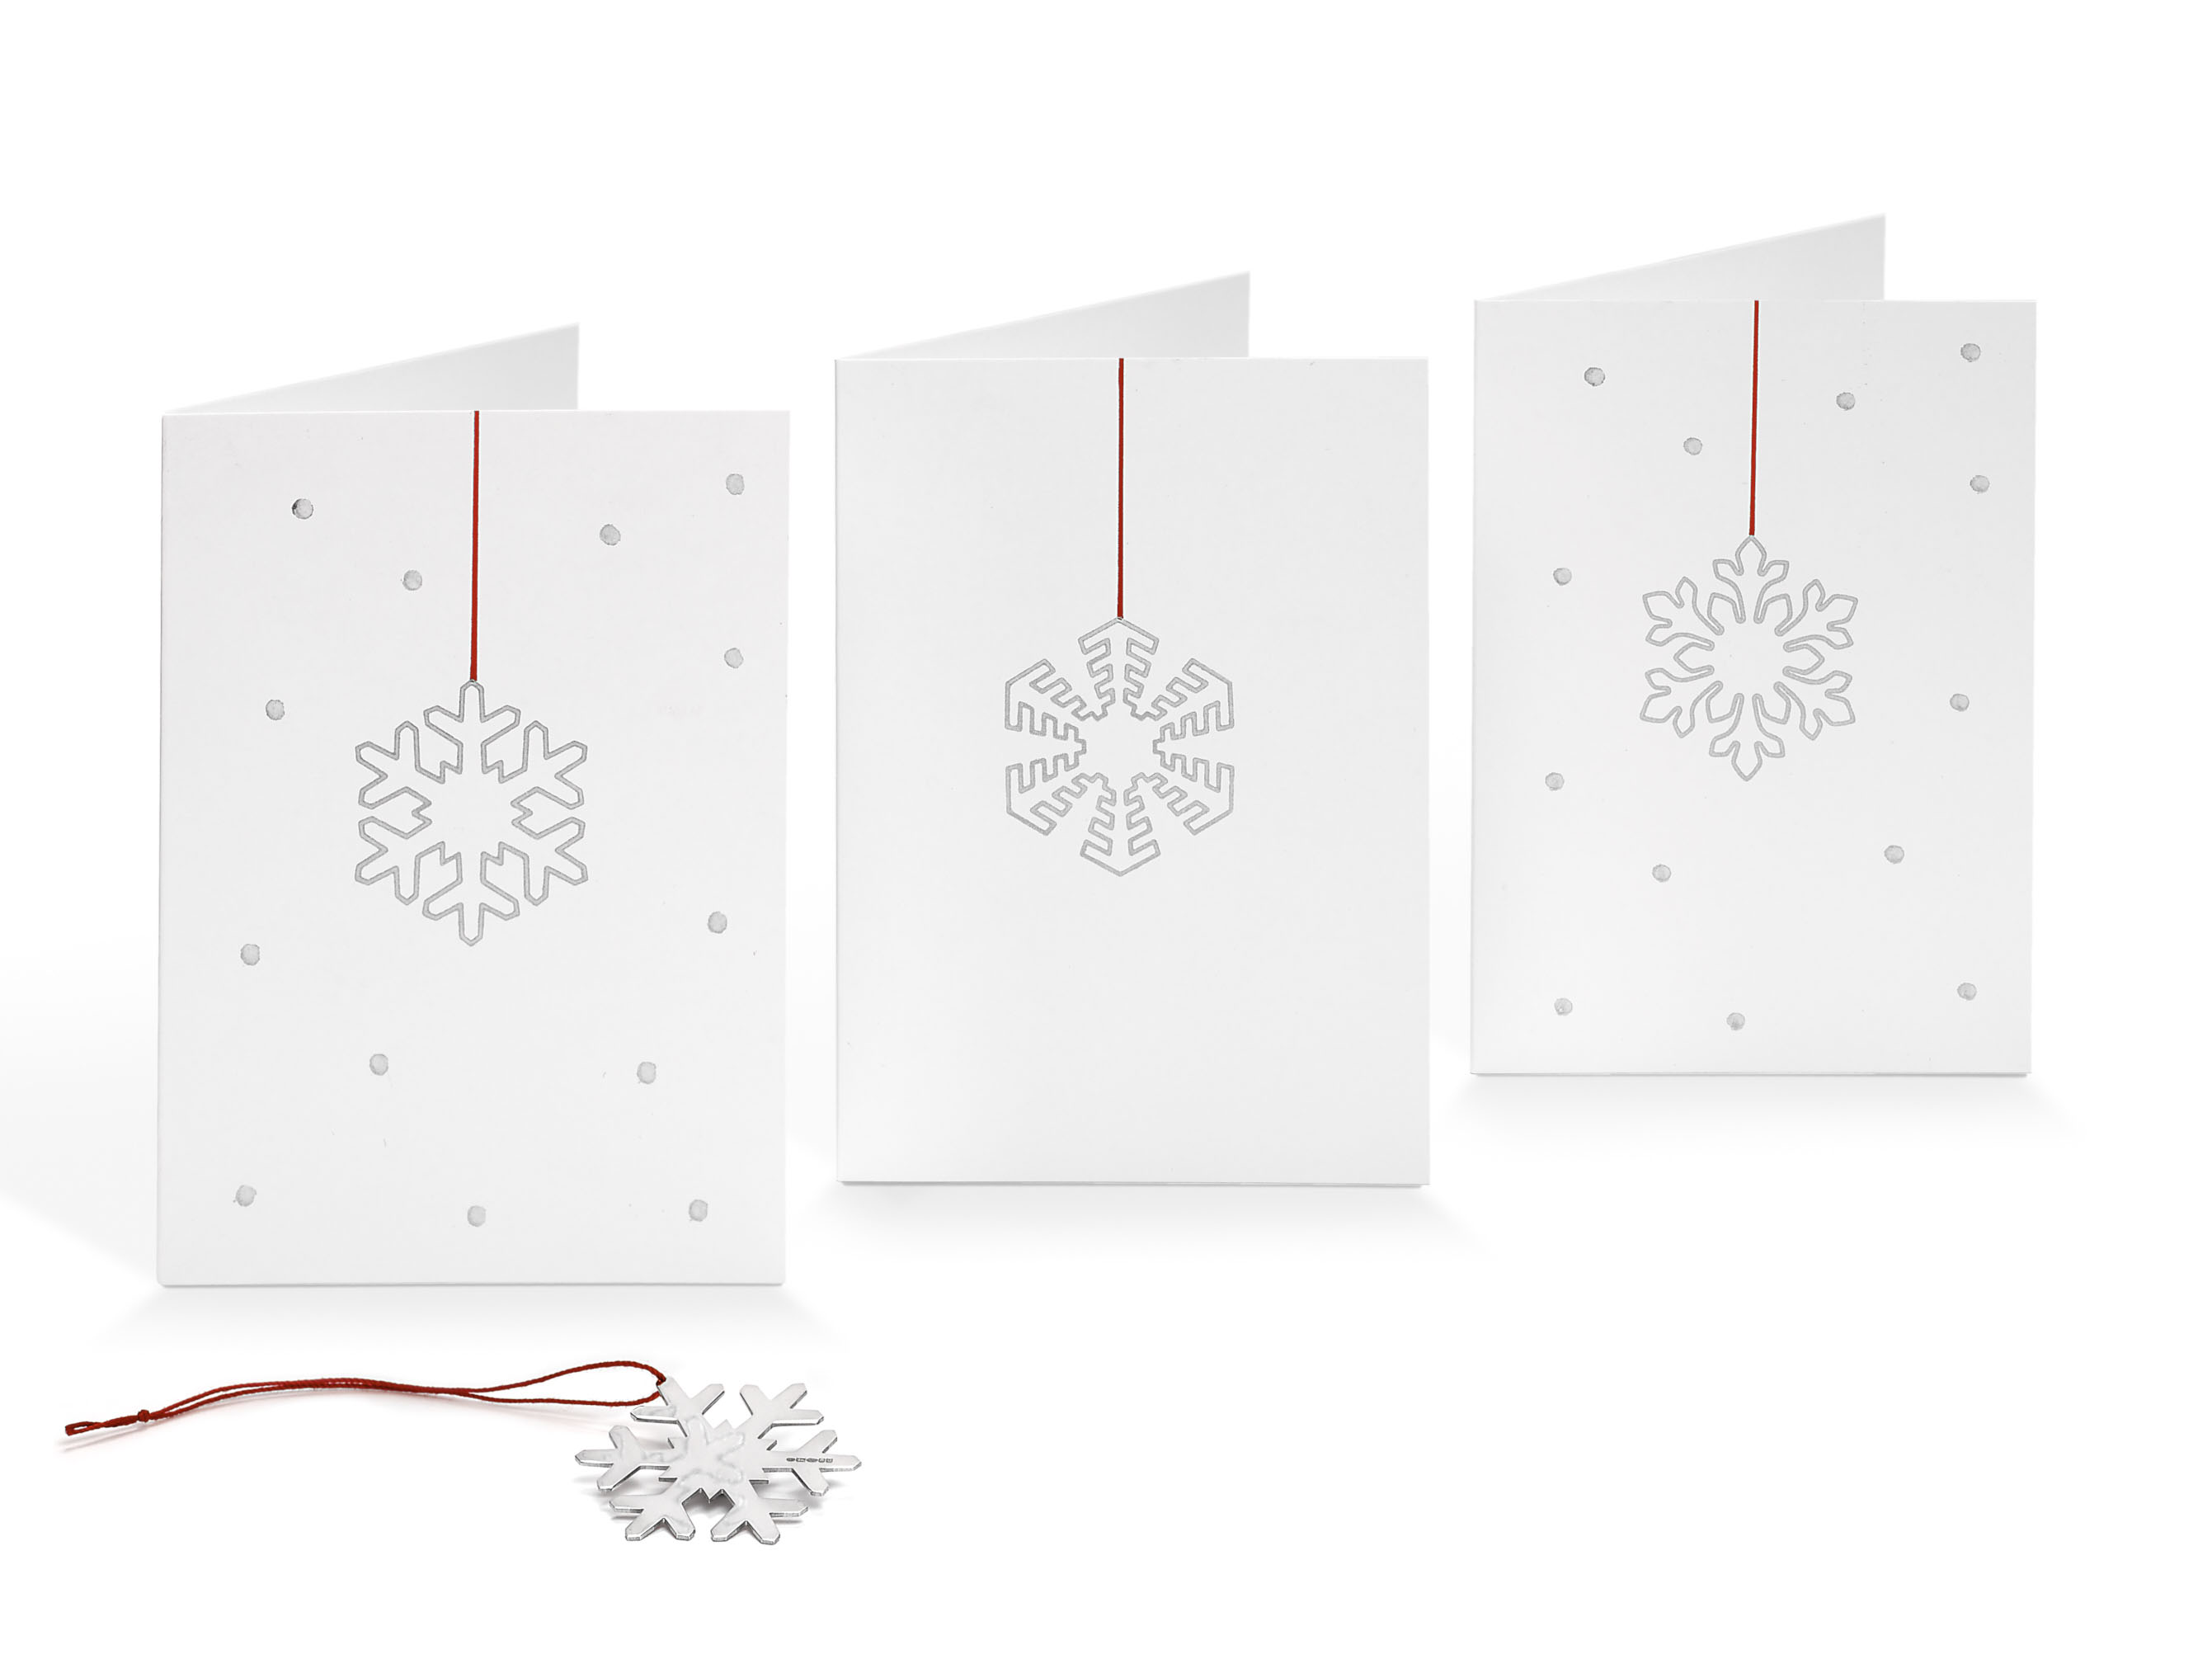 Printed Silver Cards with Removed Silver Decoration